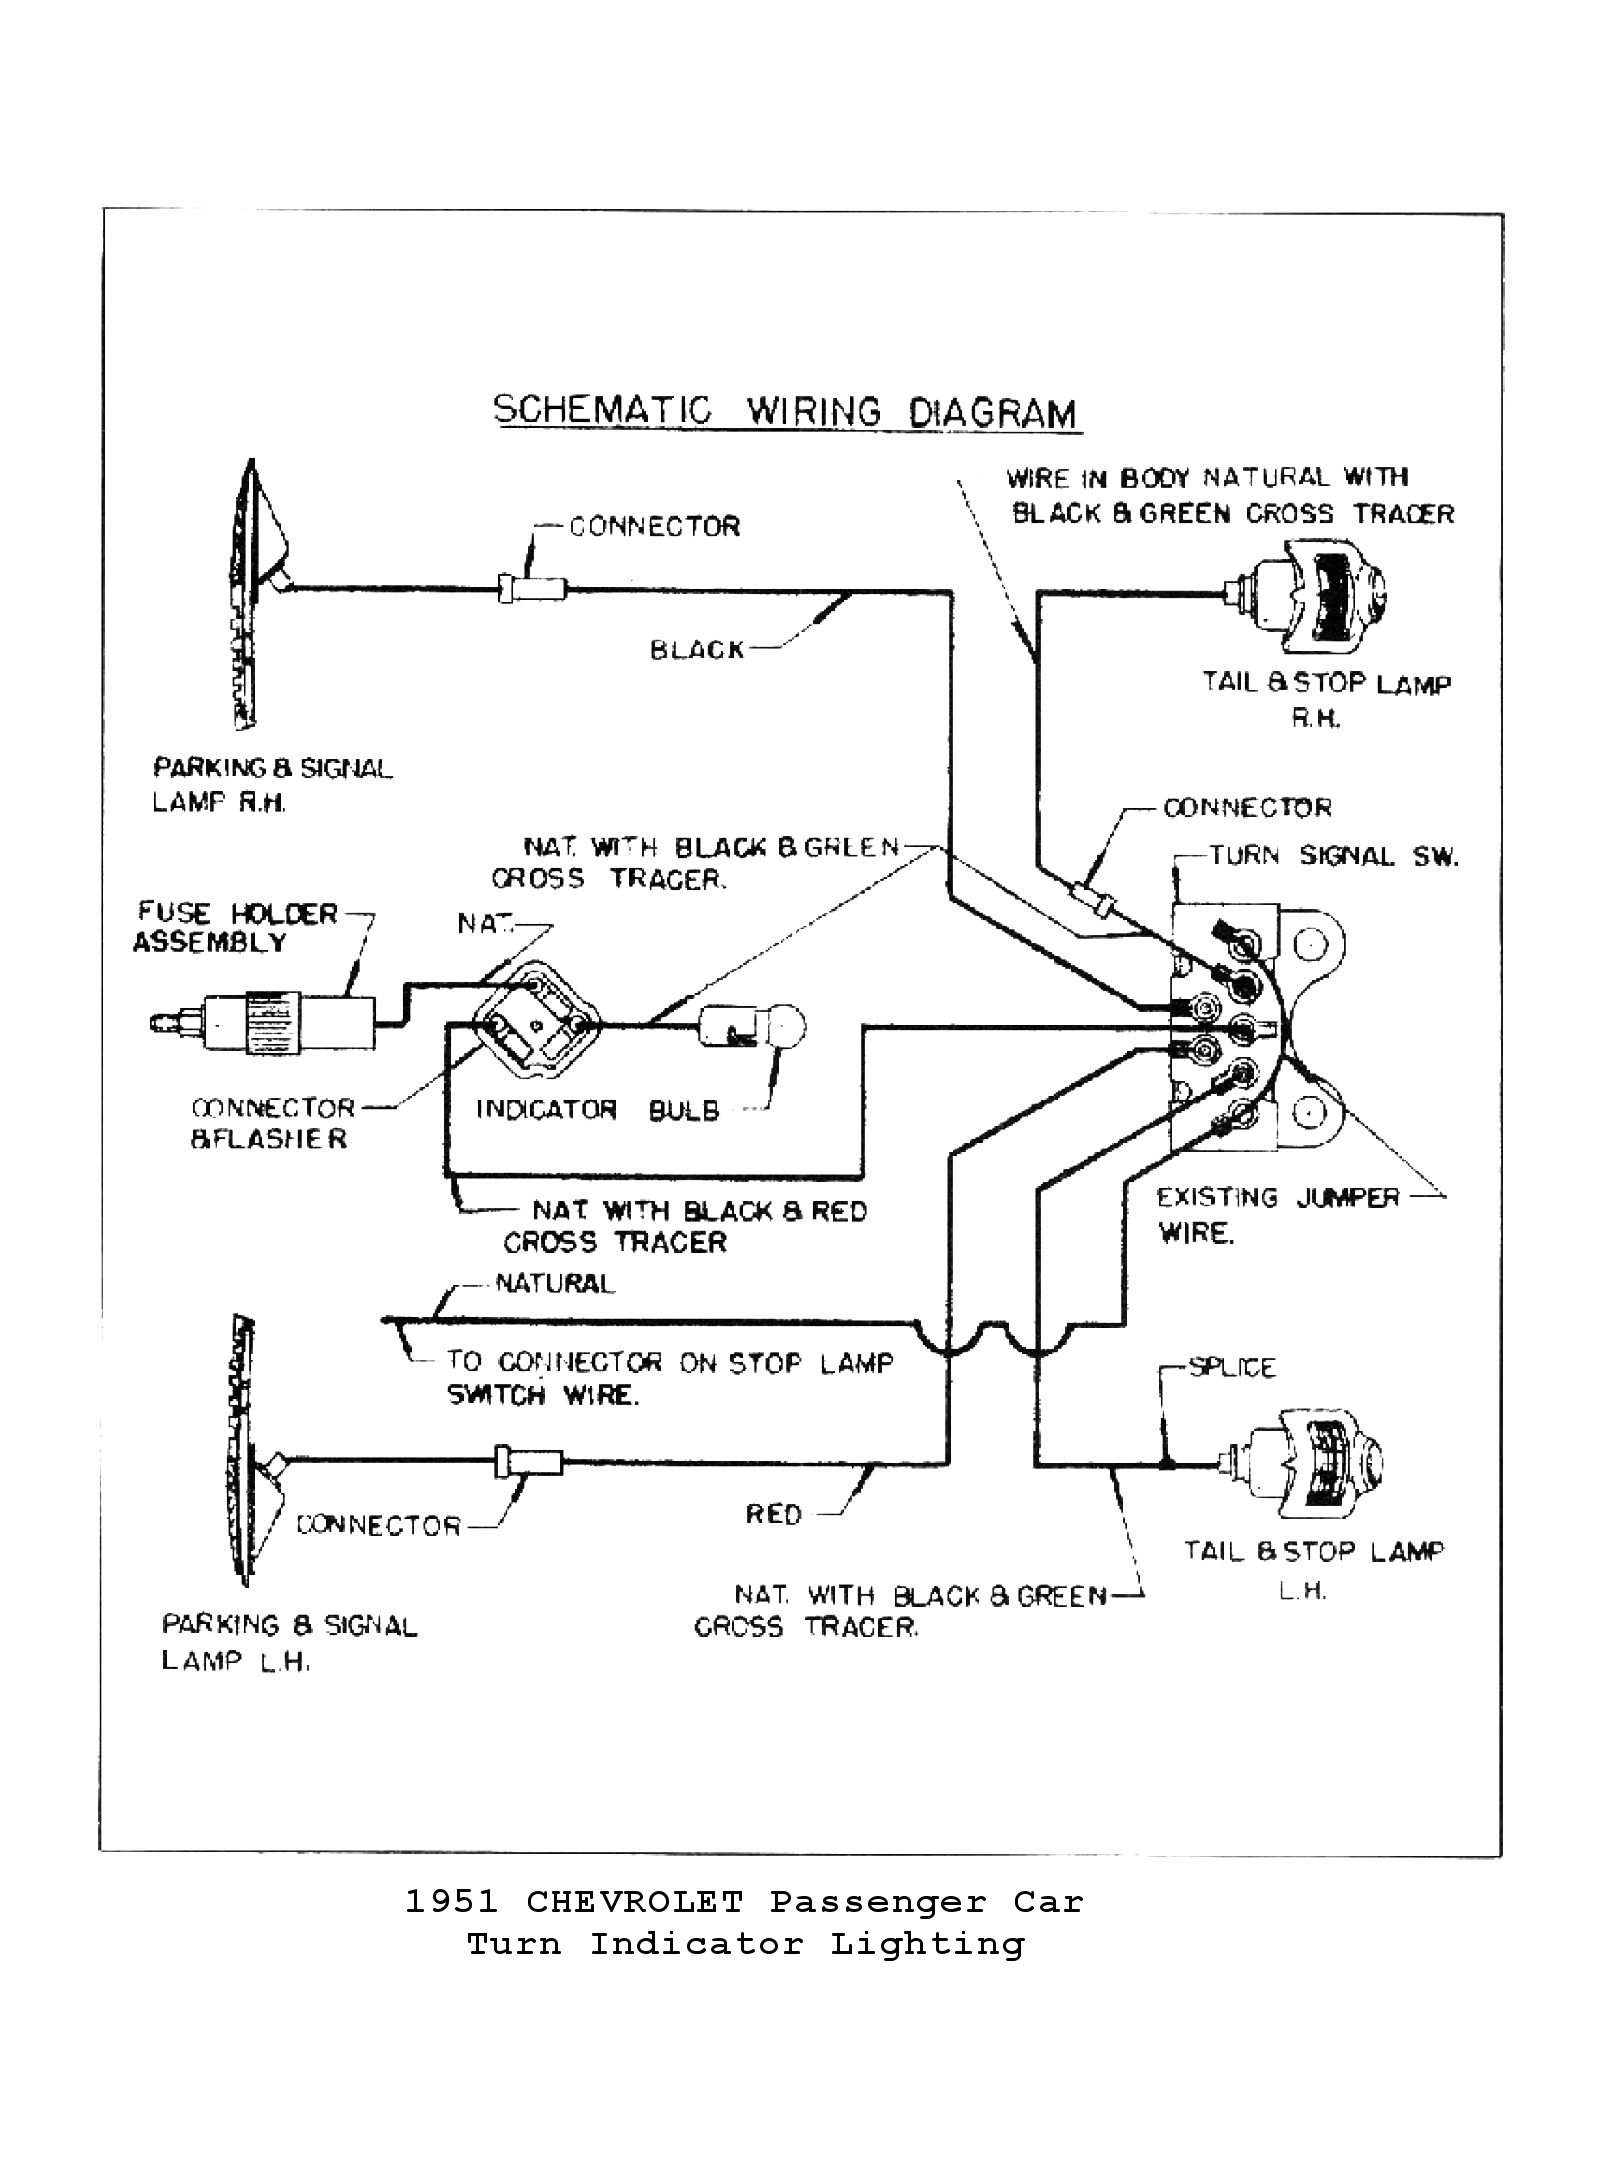 5152turnsignals chevy wiring diagrams turn signal wiring diagram chevy truck at alyssarenee.co